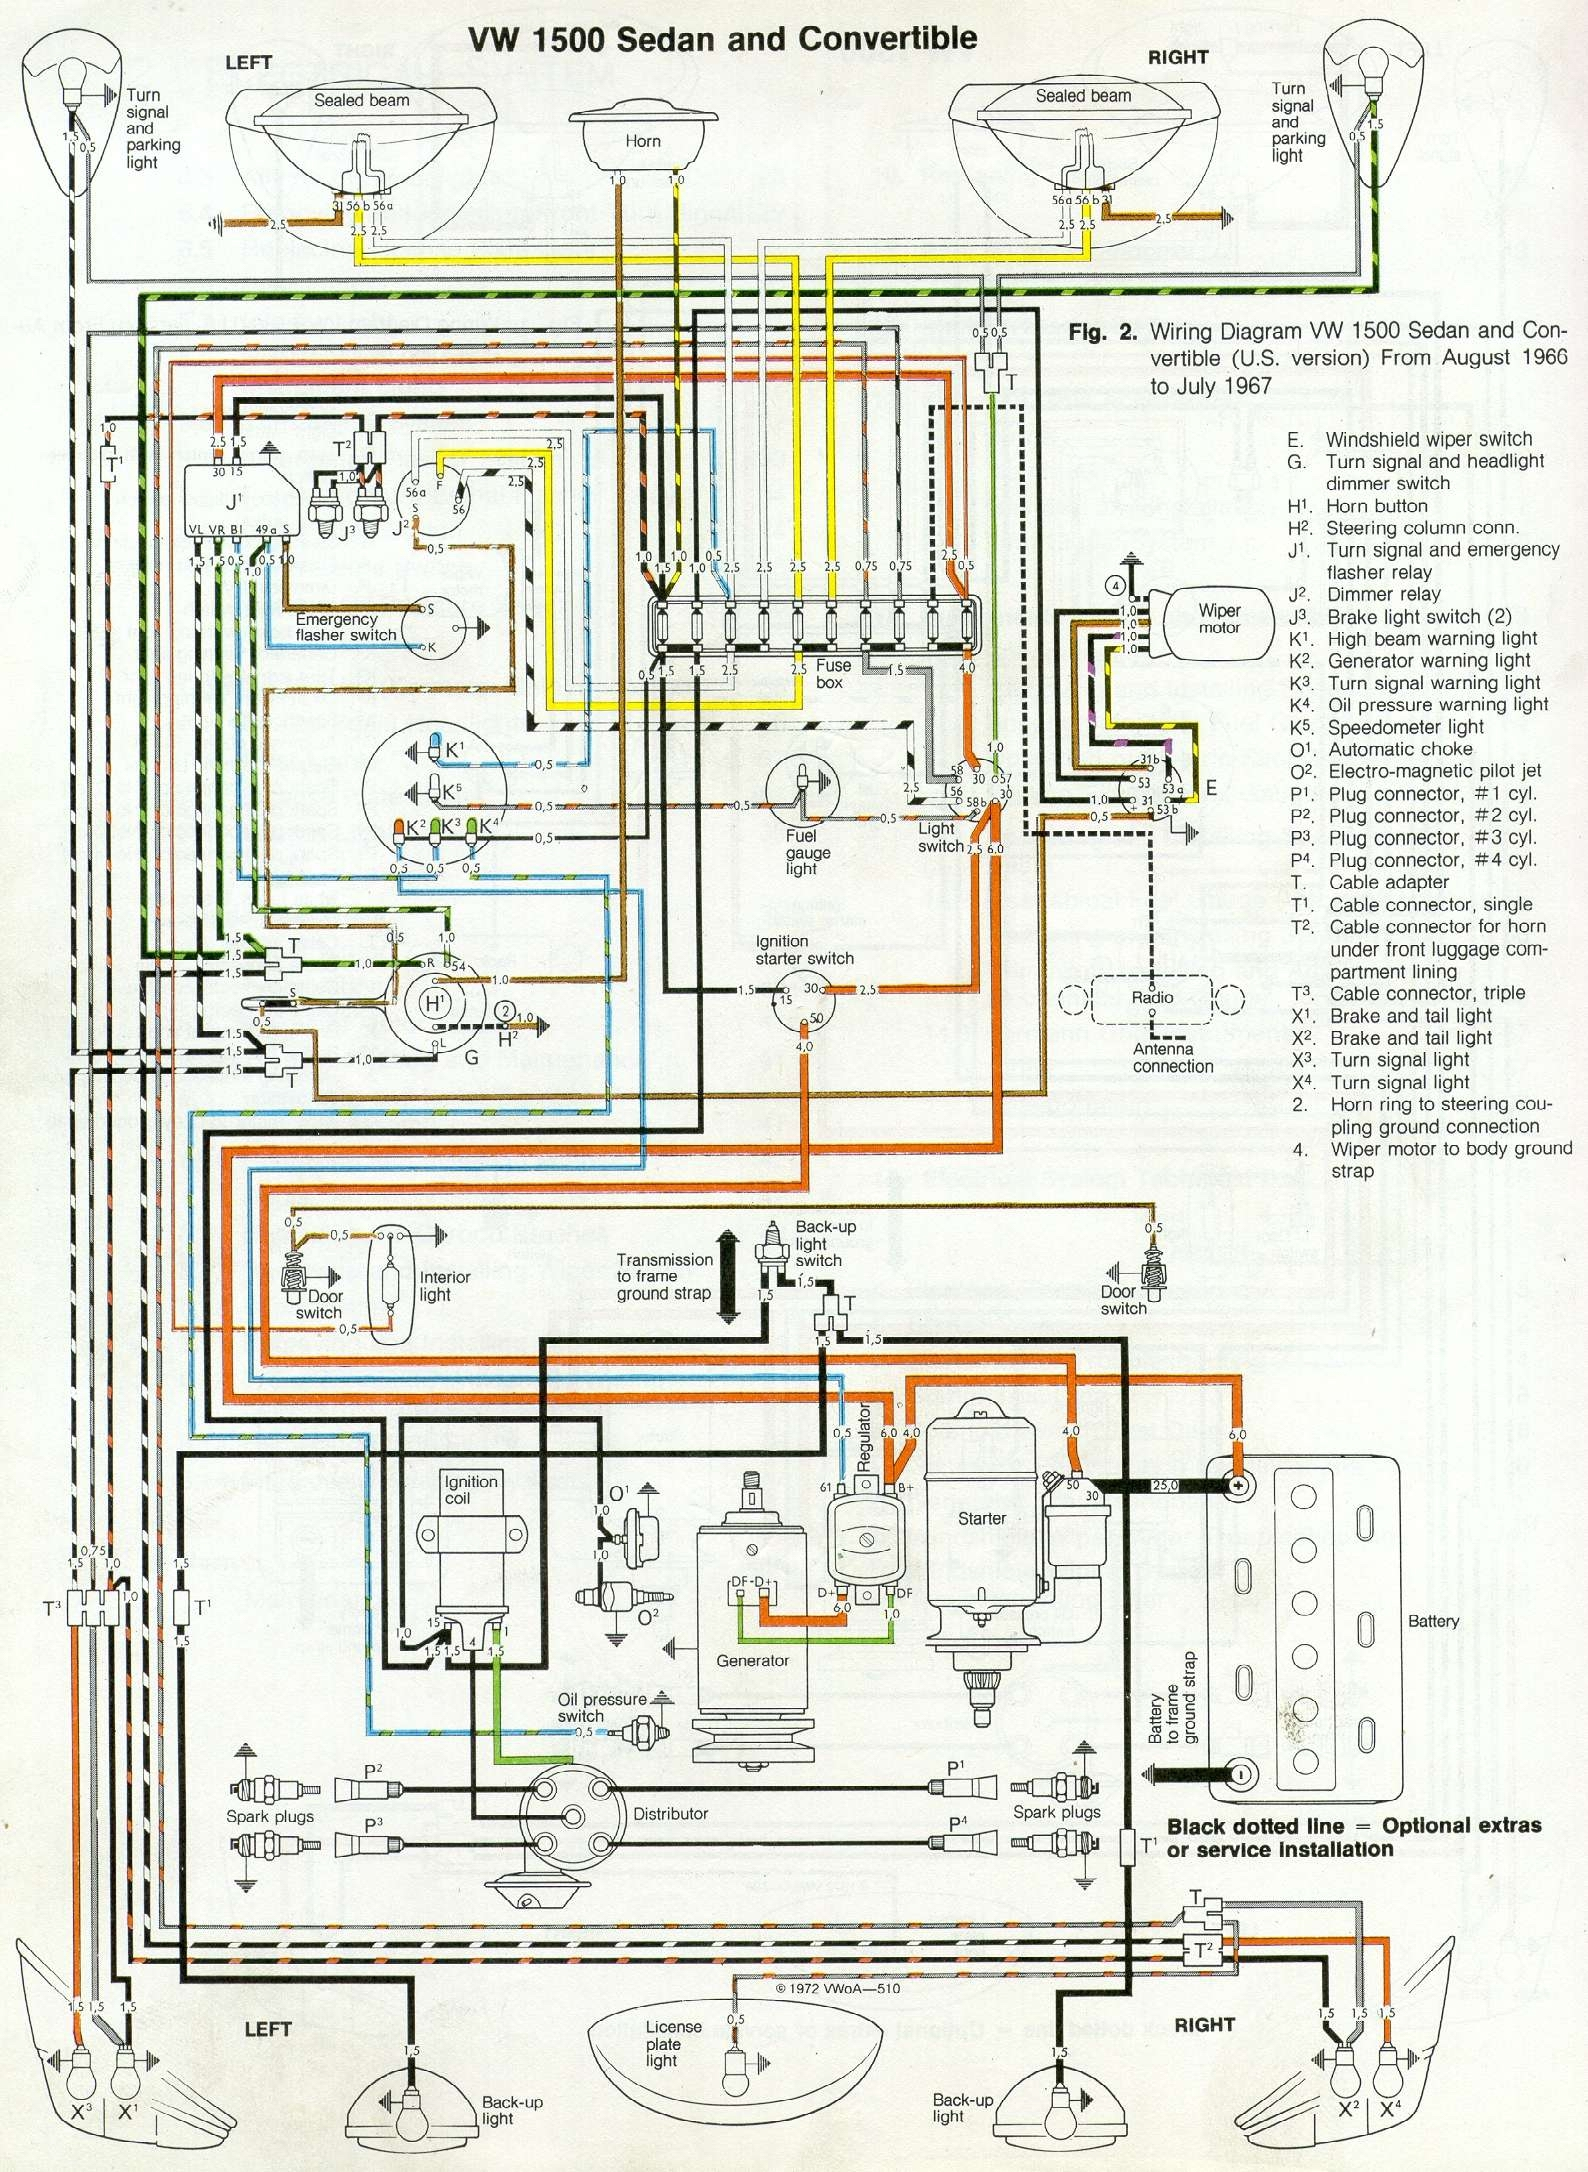 1966 volkswagen wiring diagram | brief-relevance wiring diagram library |  brief-relevance.kivitour.it  brief-relevance.kivitour.it